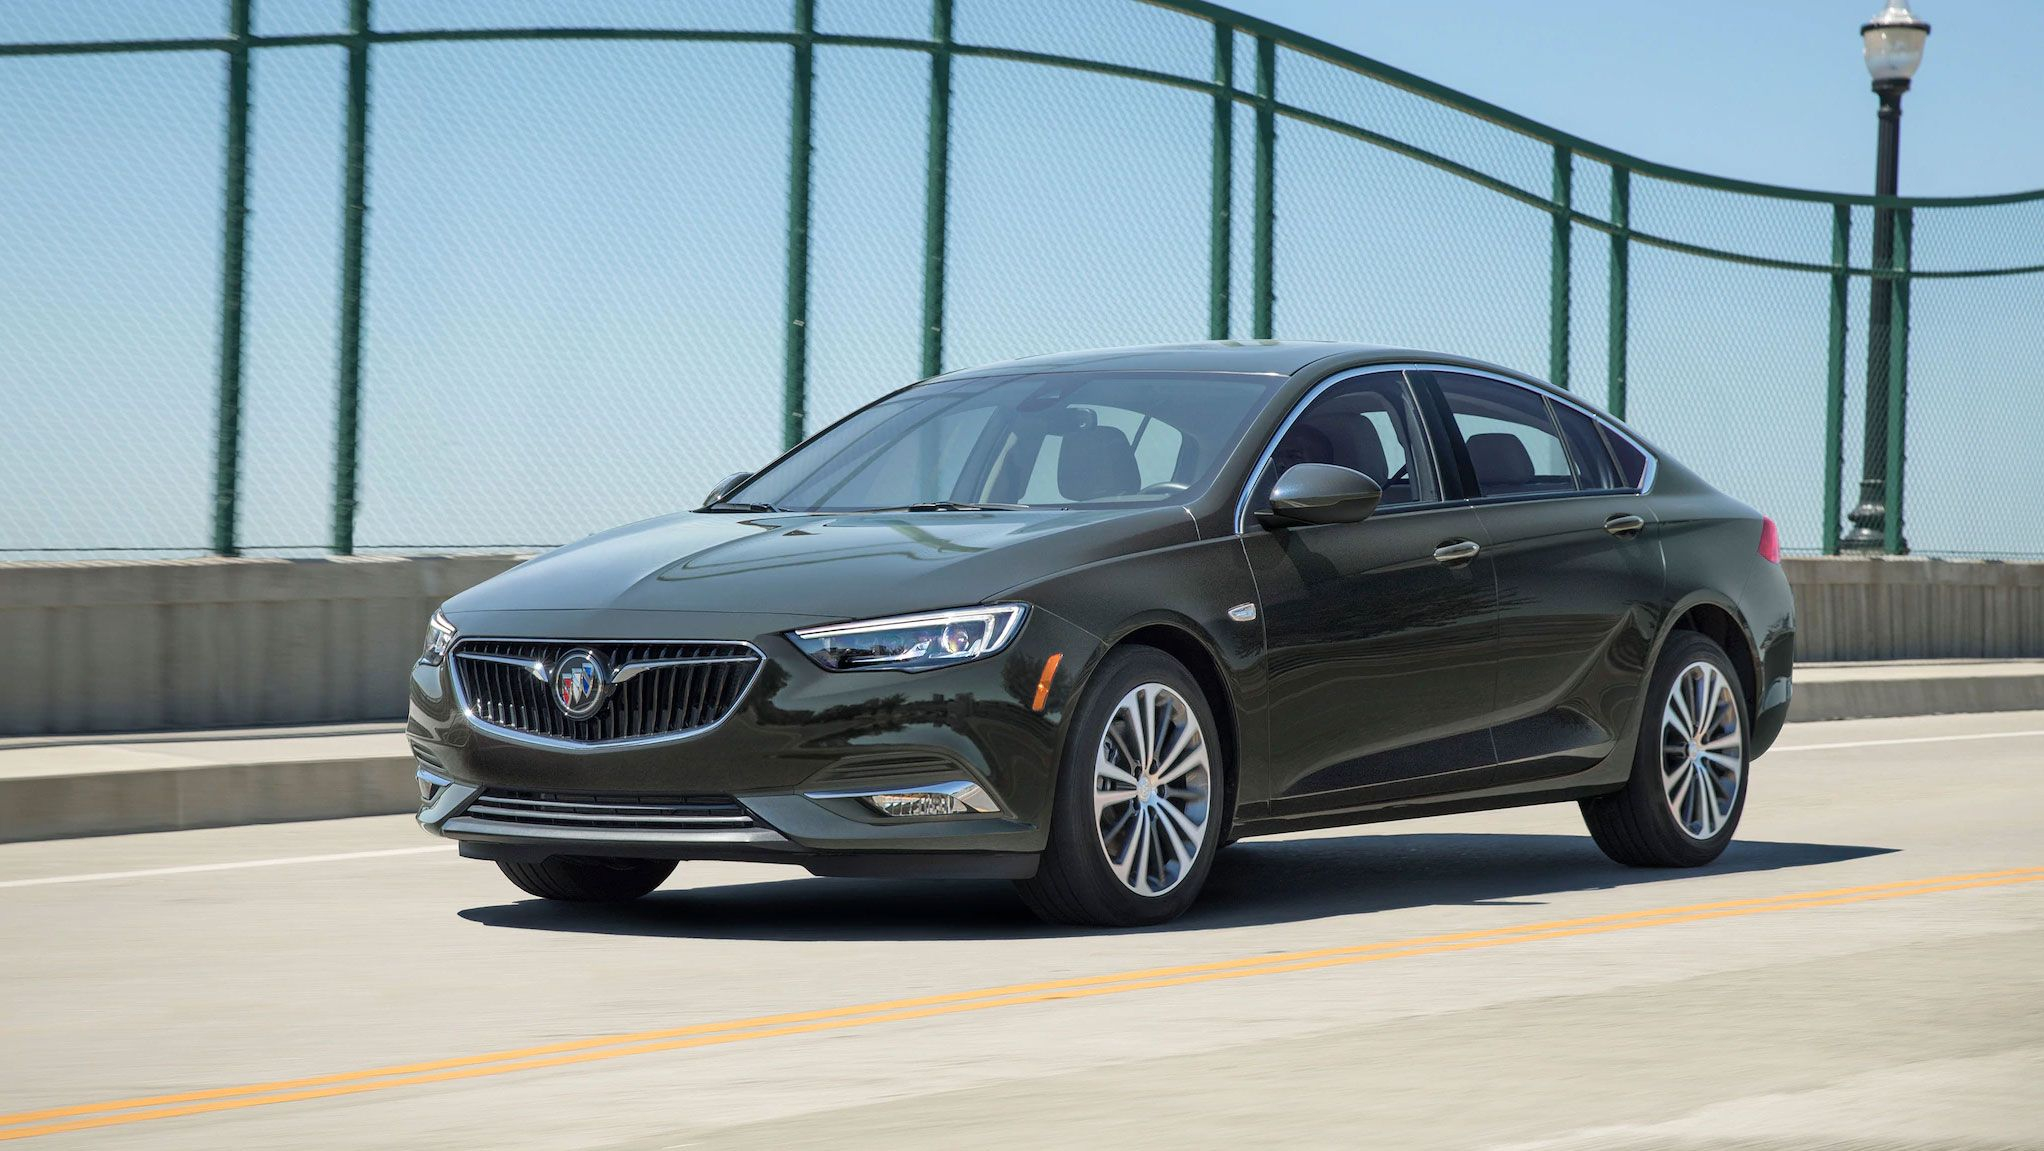 2020 Buick Regal Sportback Review, Pricing, And Specs New 2021 Buick Regal Sportback Configurations, Ground Clearance, Release Date